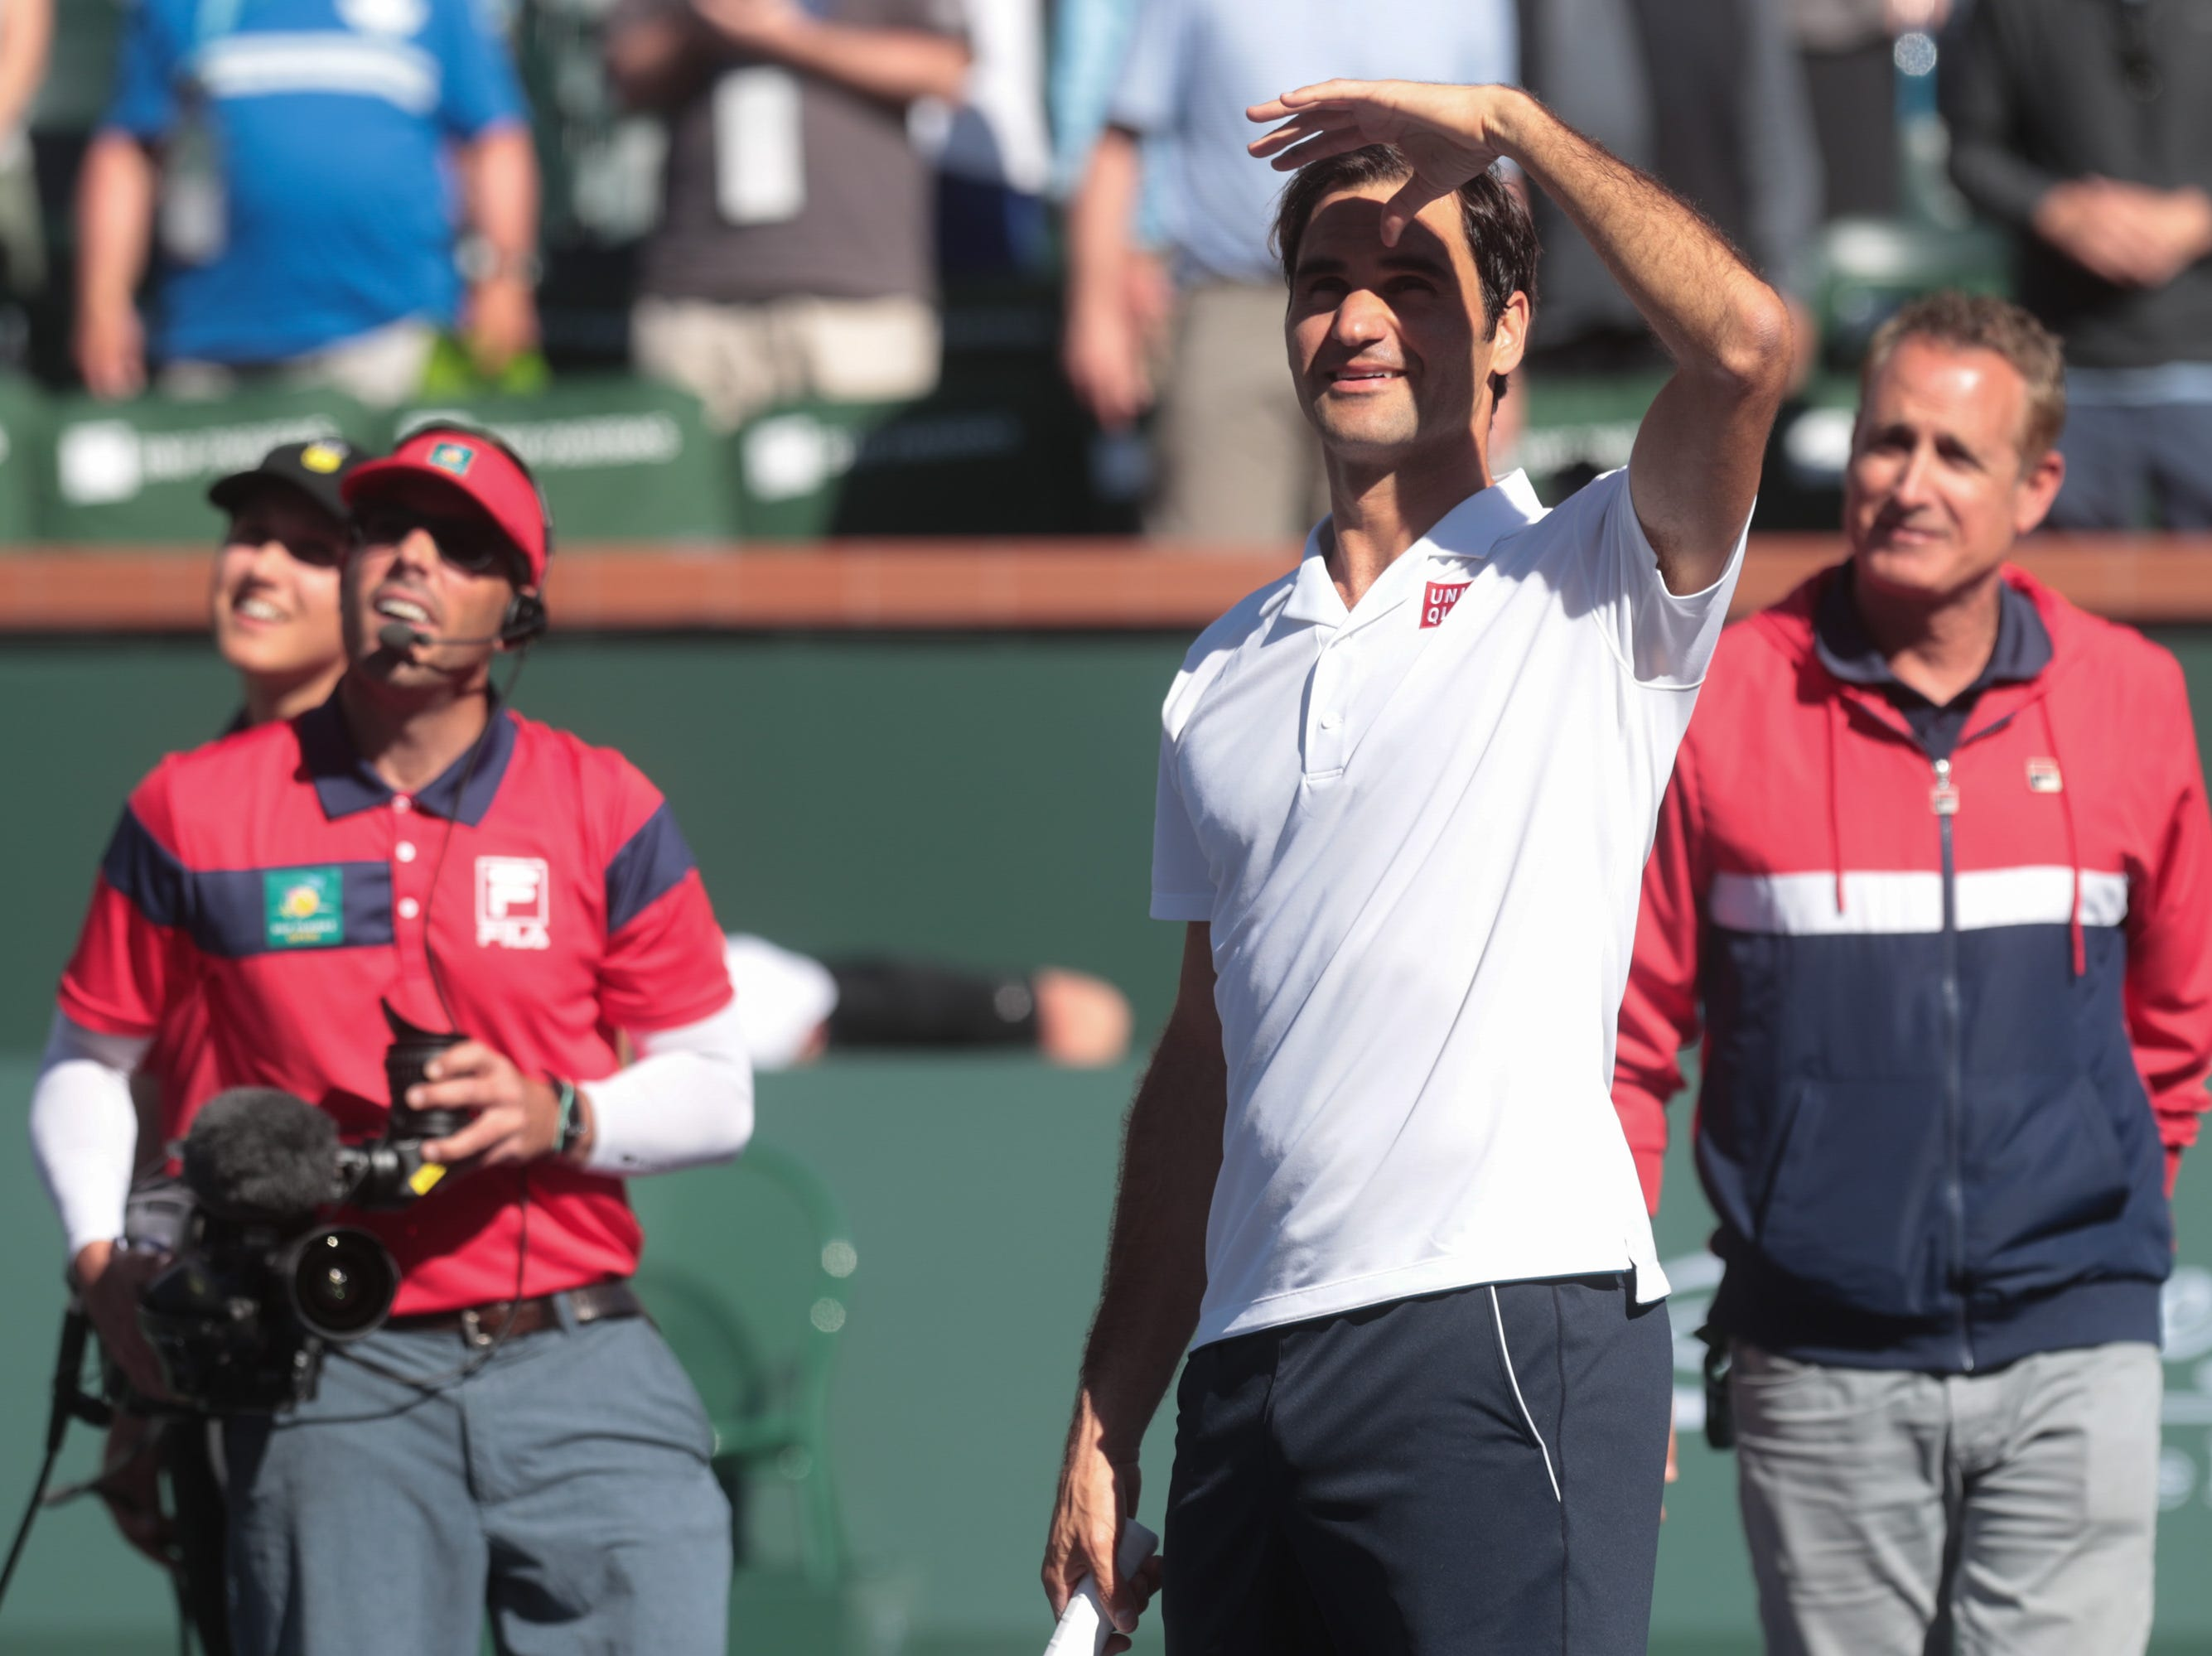 Roger Federer hits signed tennis balls into the crowd after defeating Kyle Edmund at the BNP Paribas Open in Indian Wells, Calif., March 13, 2019.